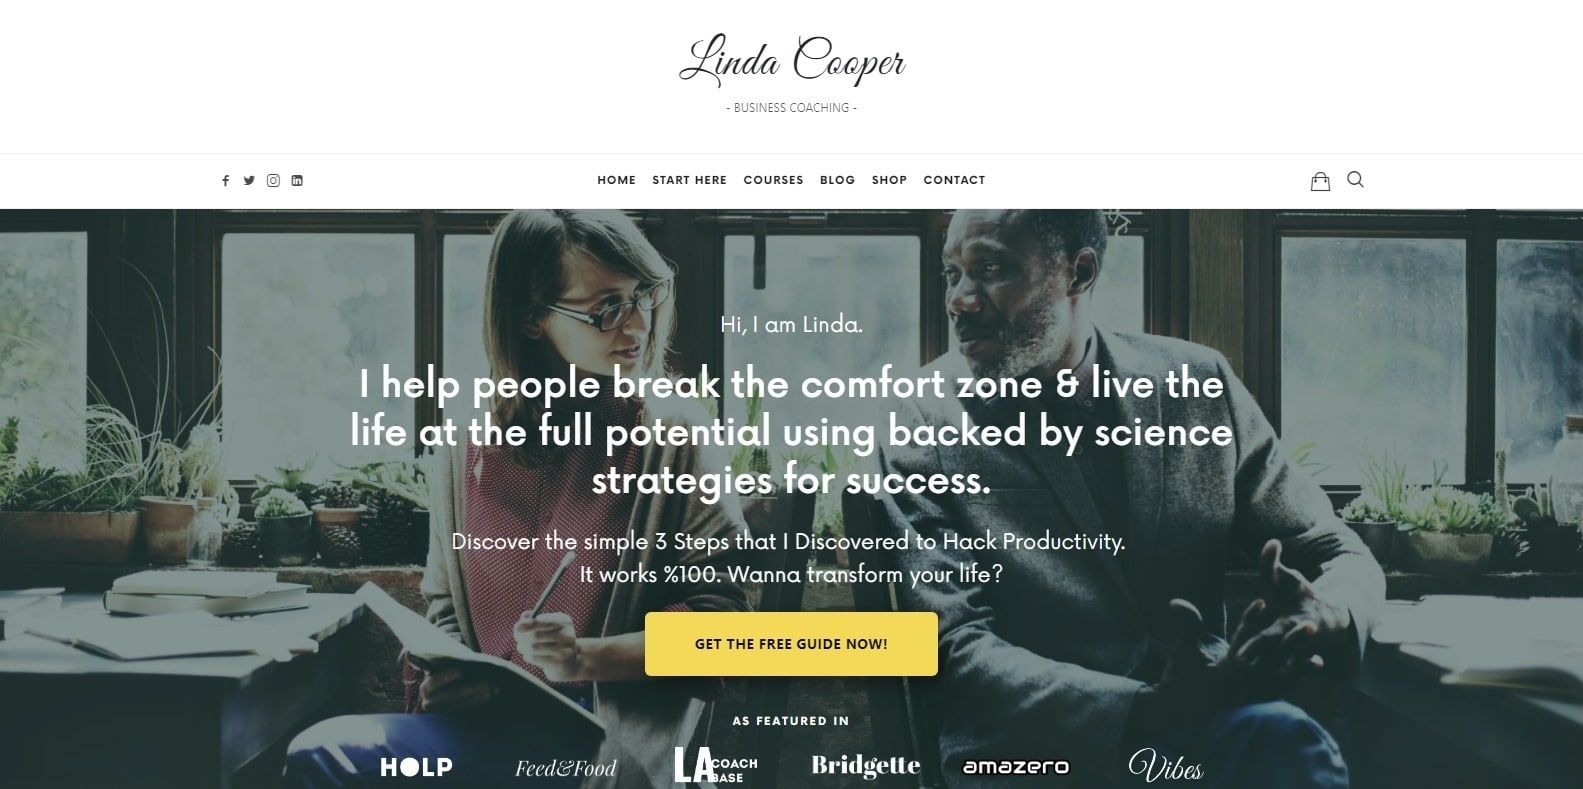 efor-coaching-website template